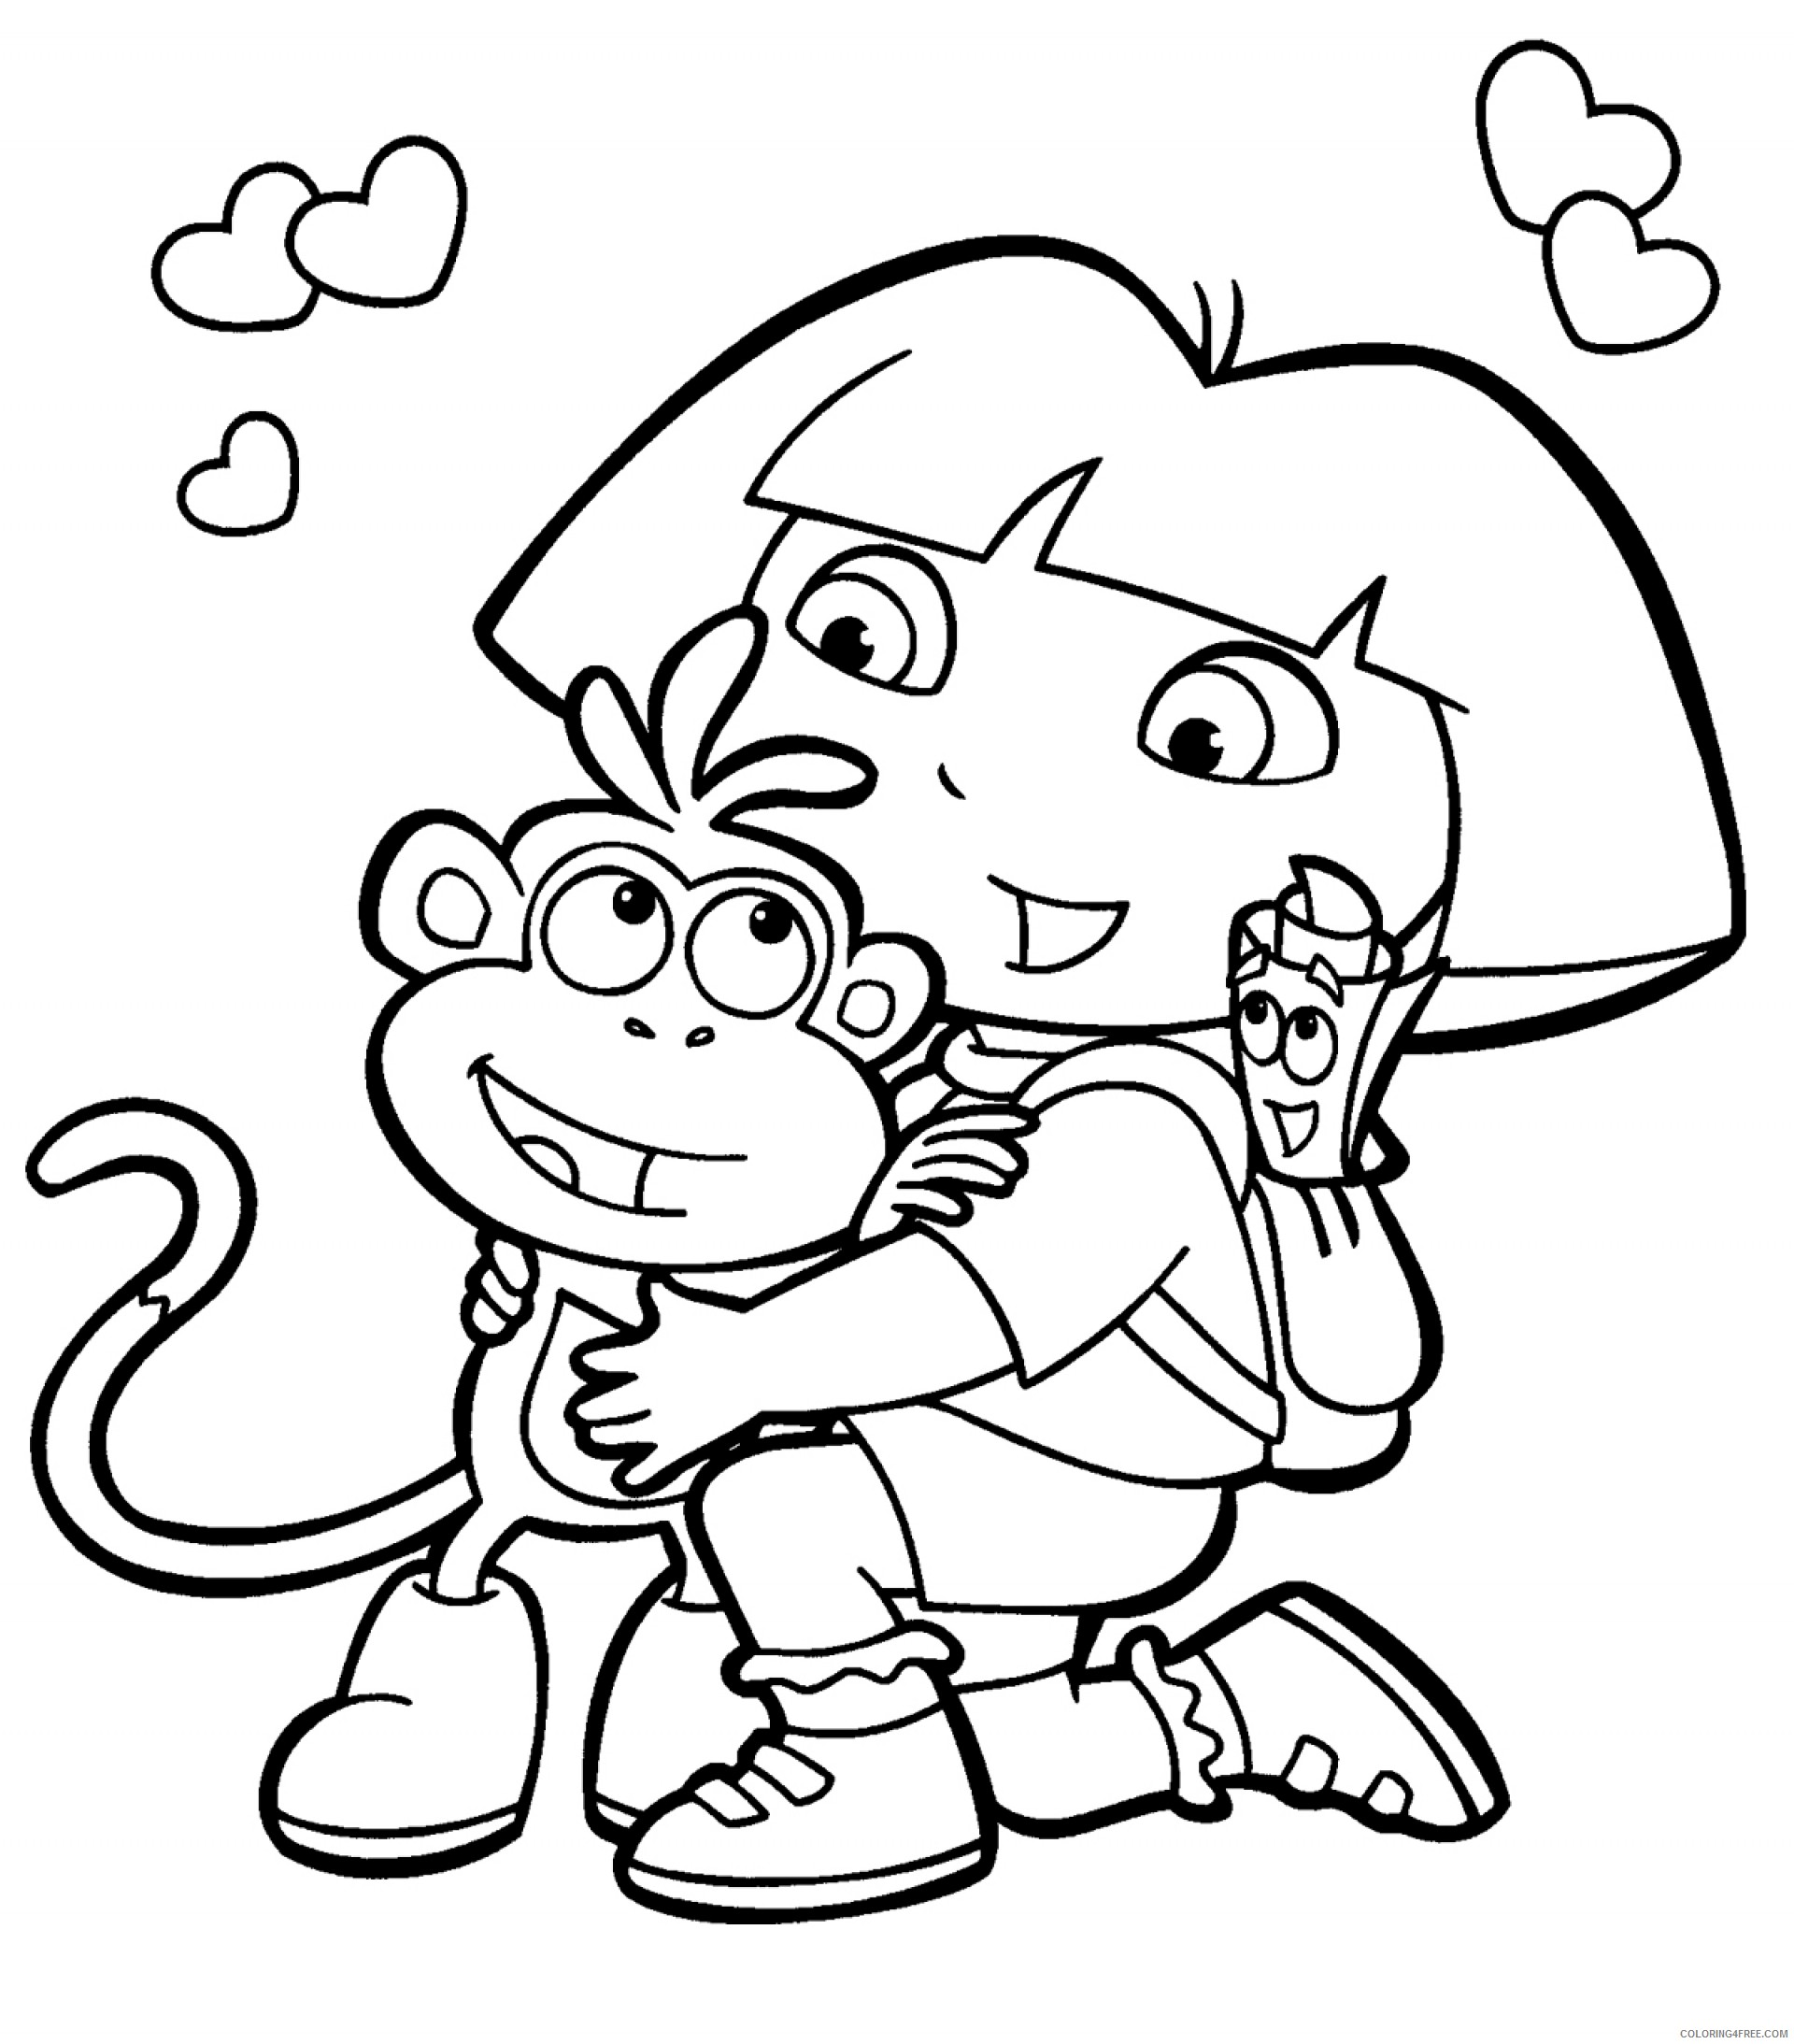 cartoon coloring pages dora the explorer Coloring4free